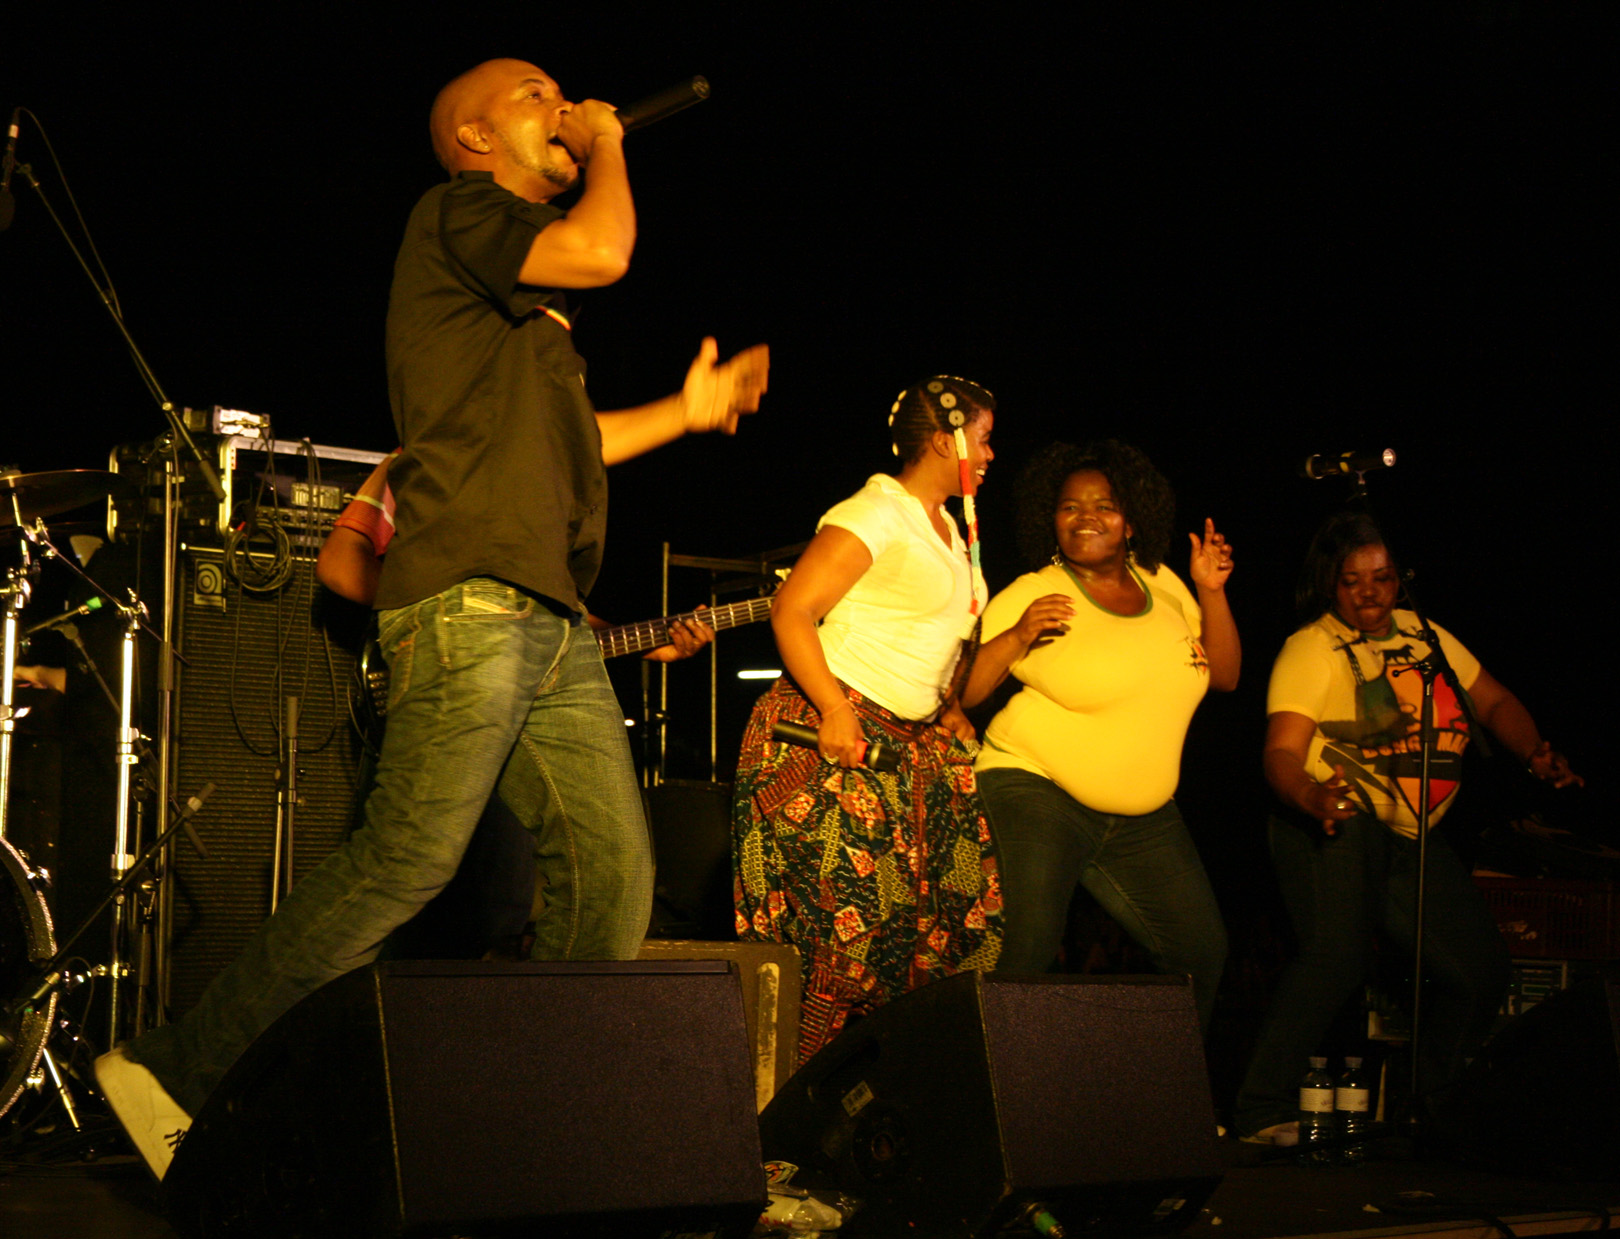 Kwaito | African Music and Dance Wiki | FANDOM powered by Wikia